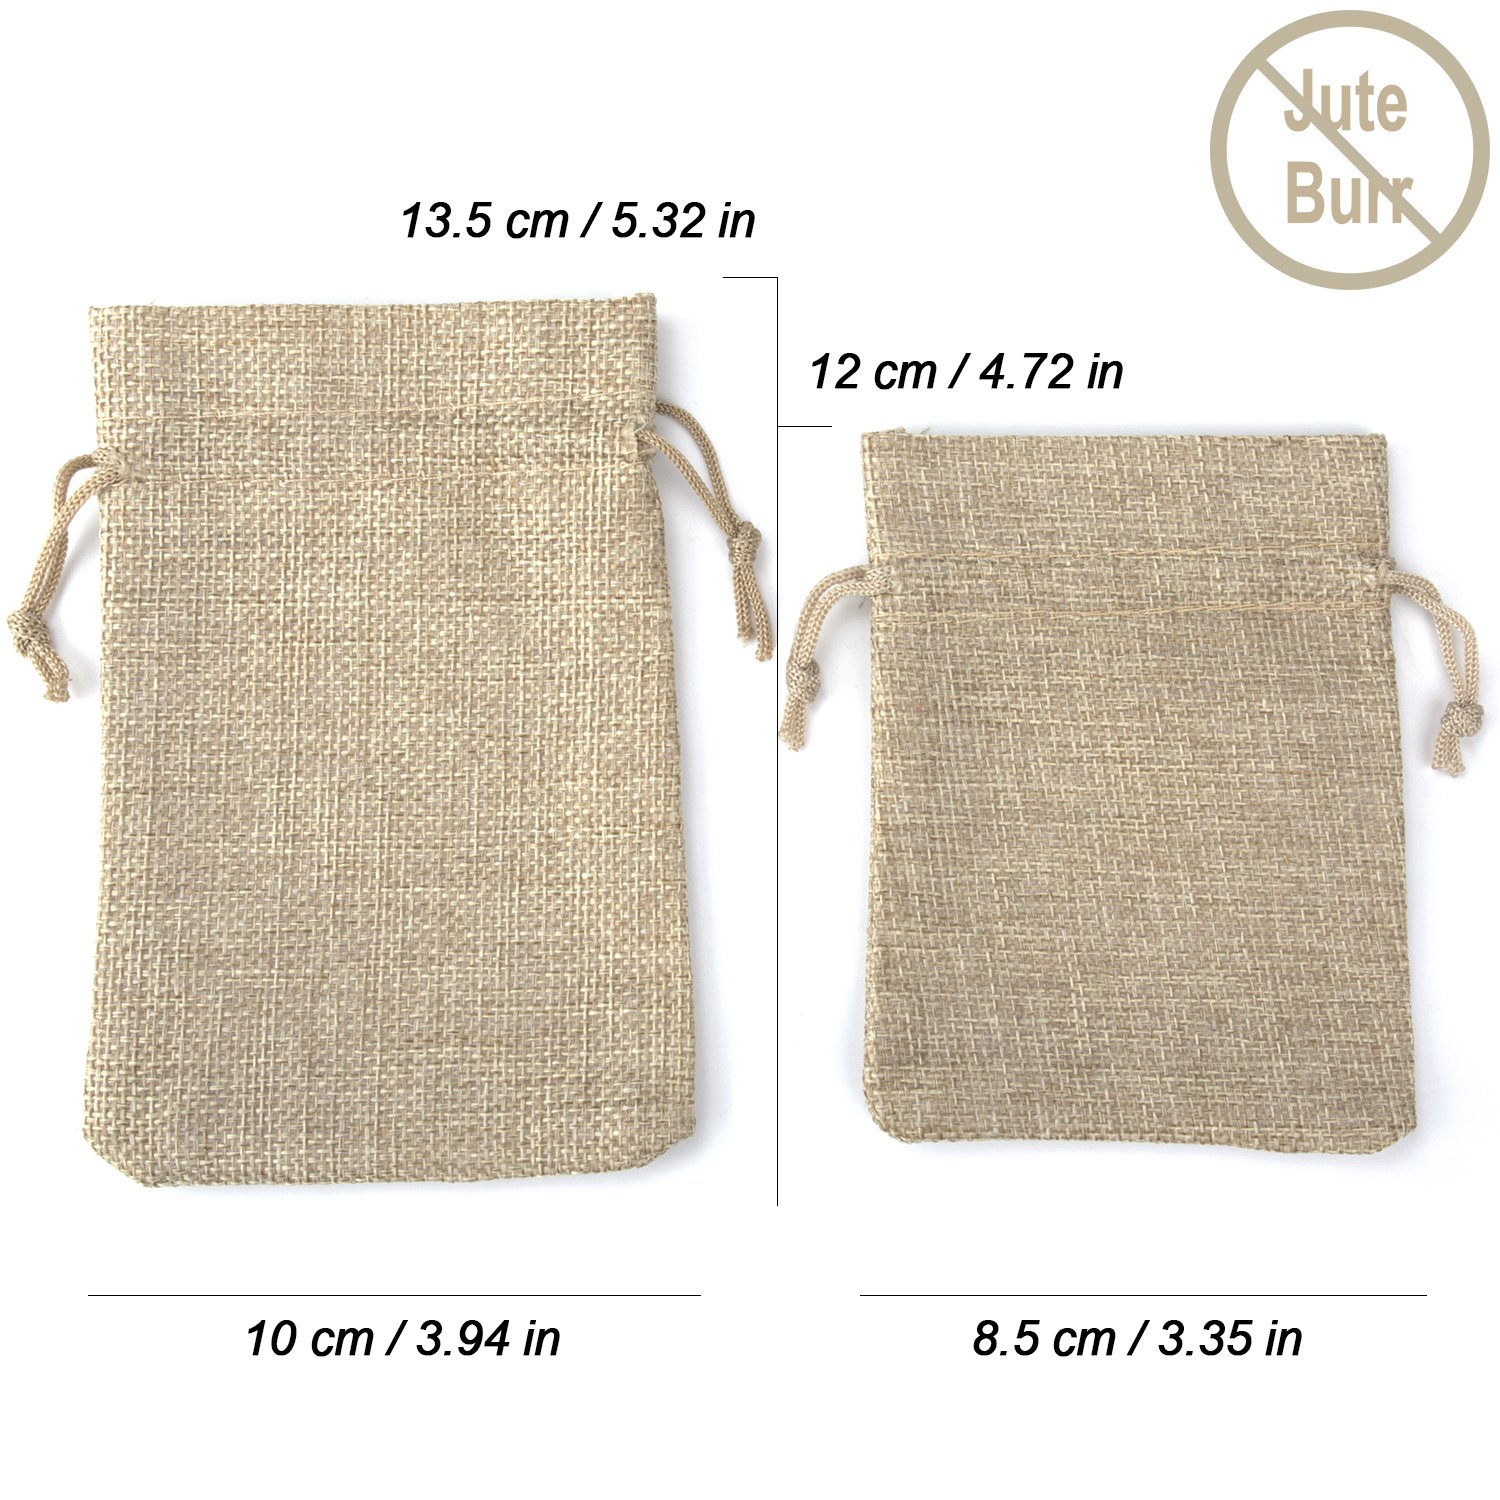 Amazon.com: ADVcer Burlap Bags with Drawstring Set, 5.5 x 4 and 4.8 ...